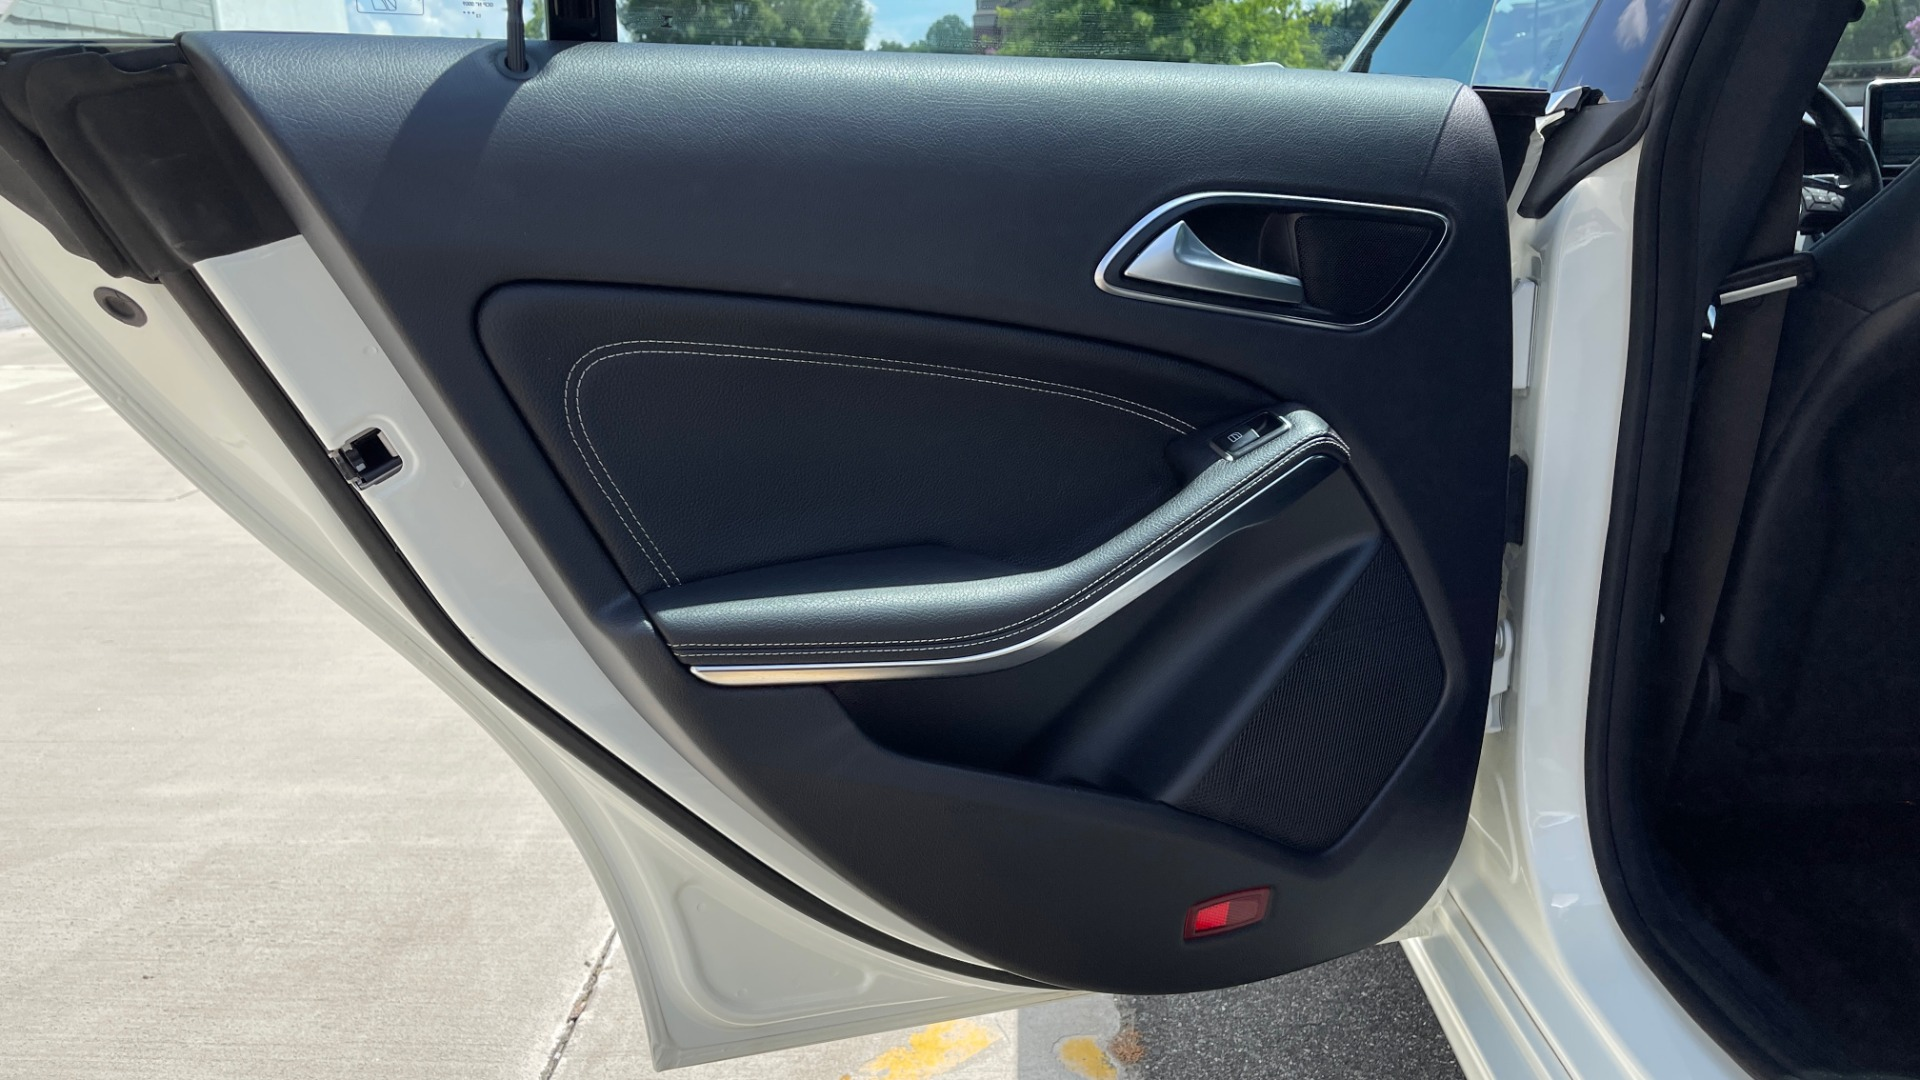 Used 2014 Mercedes-Benz CLA-Class 250 PREMIUM / NAV / MULTIMEDIA PKG / PANO-ROOF / REARVIEW for sale $19,495 at Formula Imports in Charlotte NC 28227 43